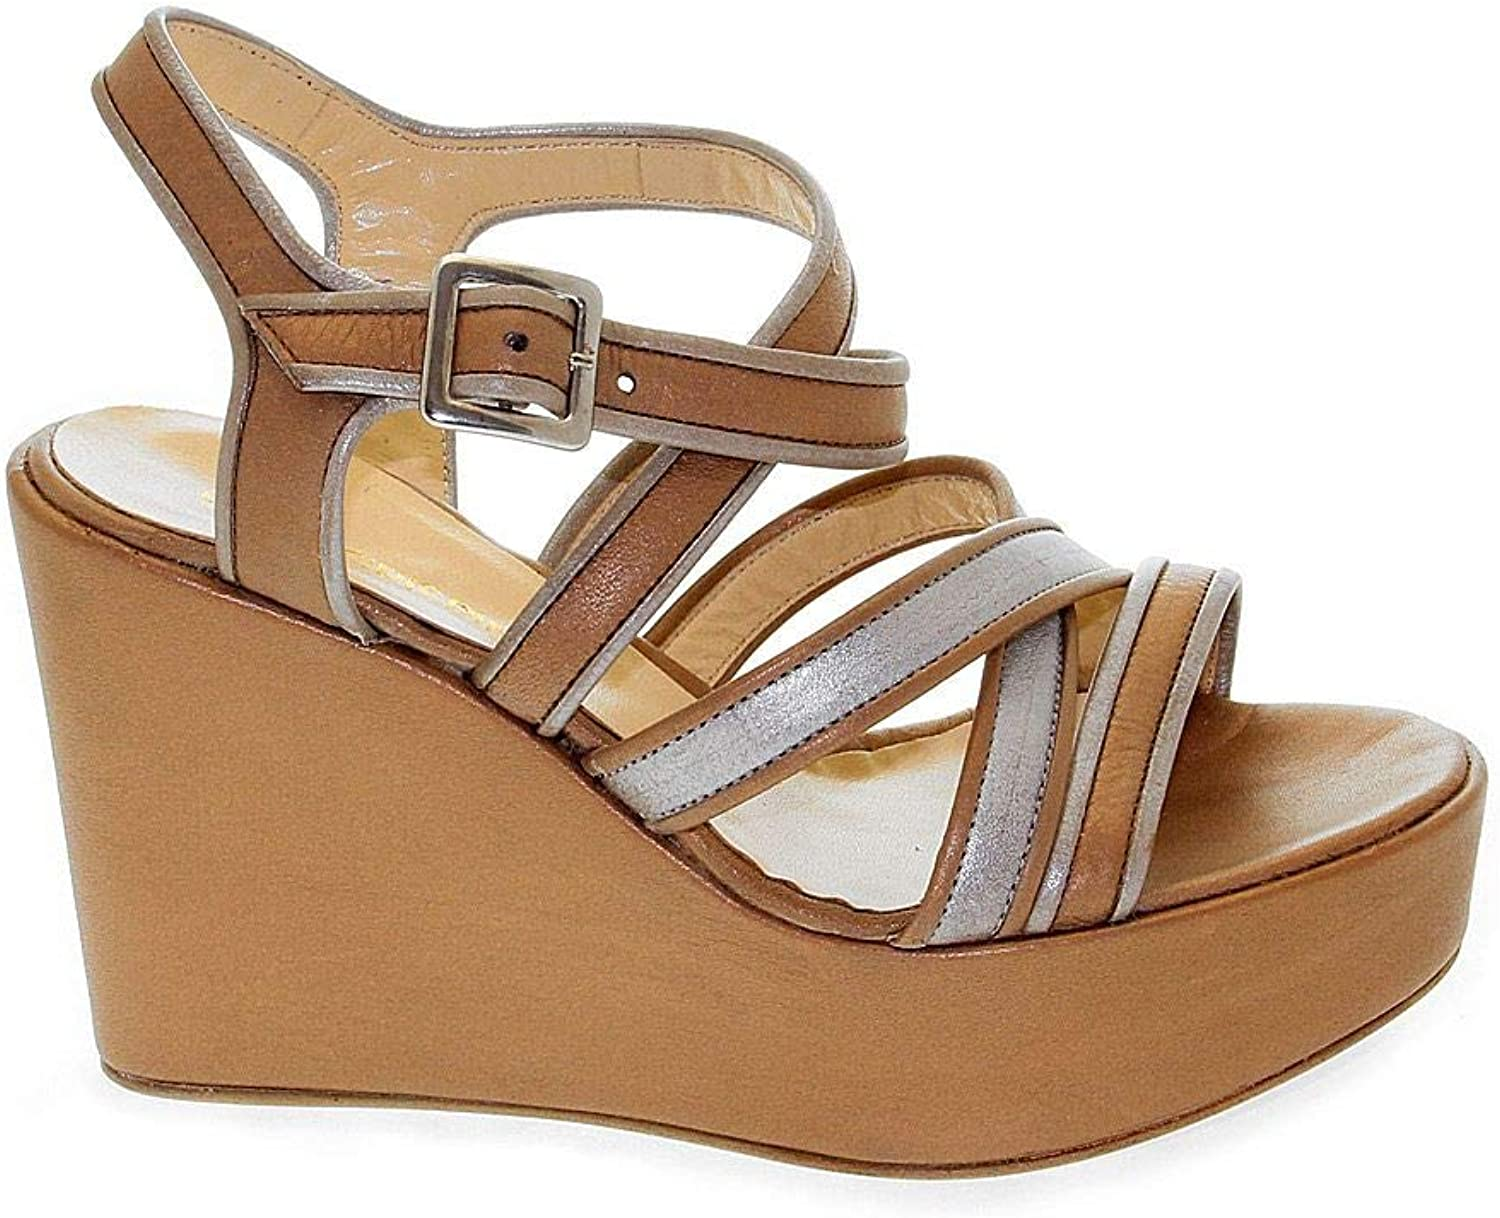 SAN CRISPINO Women's 823BBROWN Brown Leather Wedges